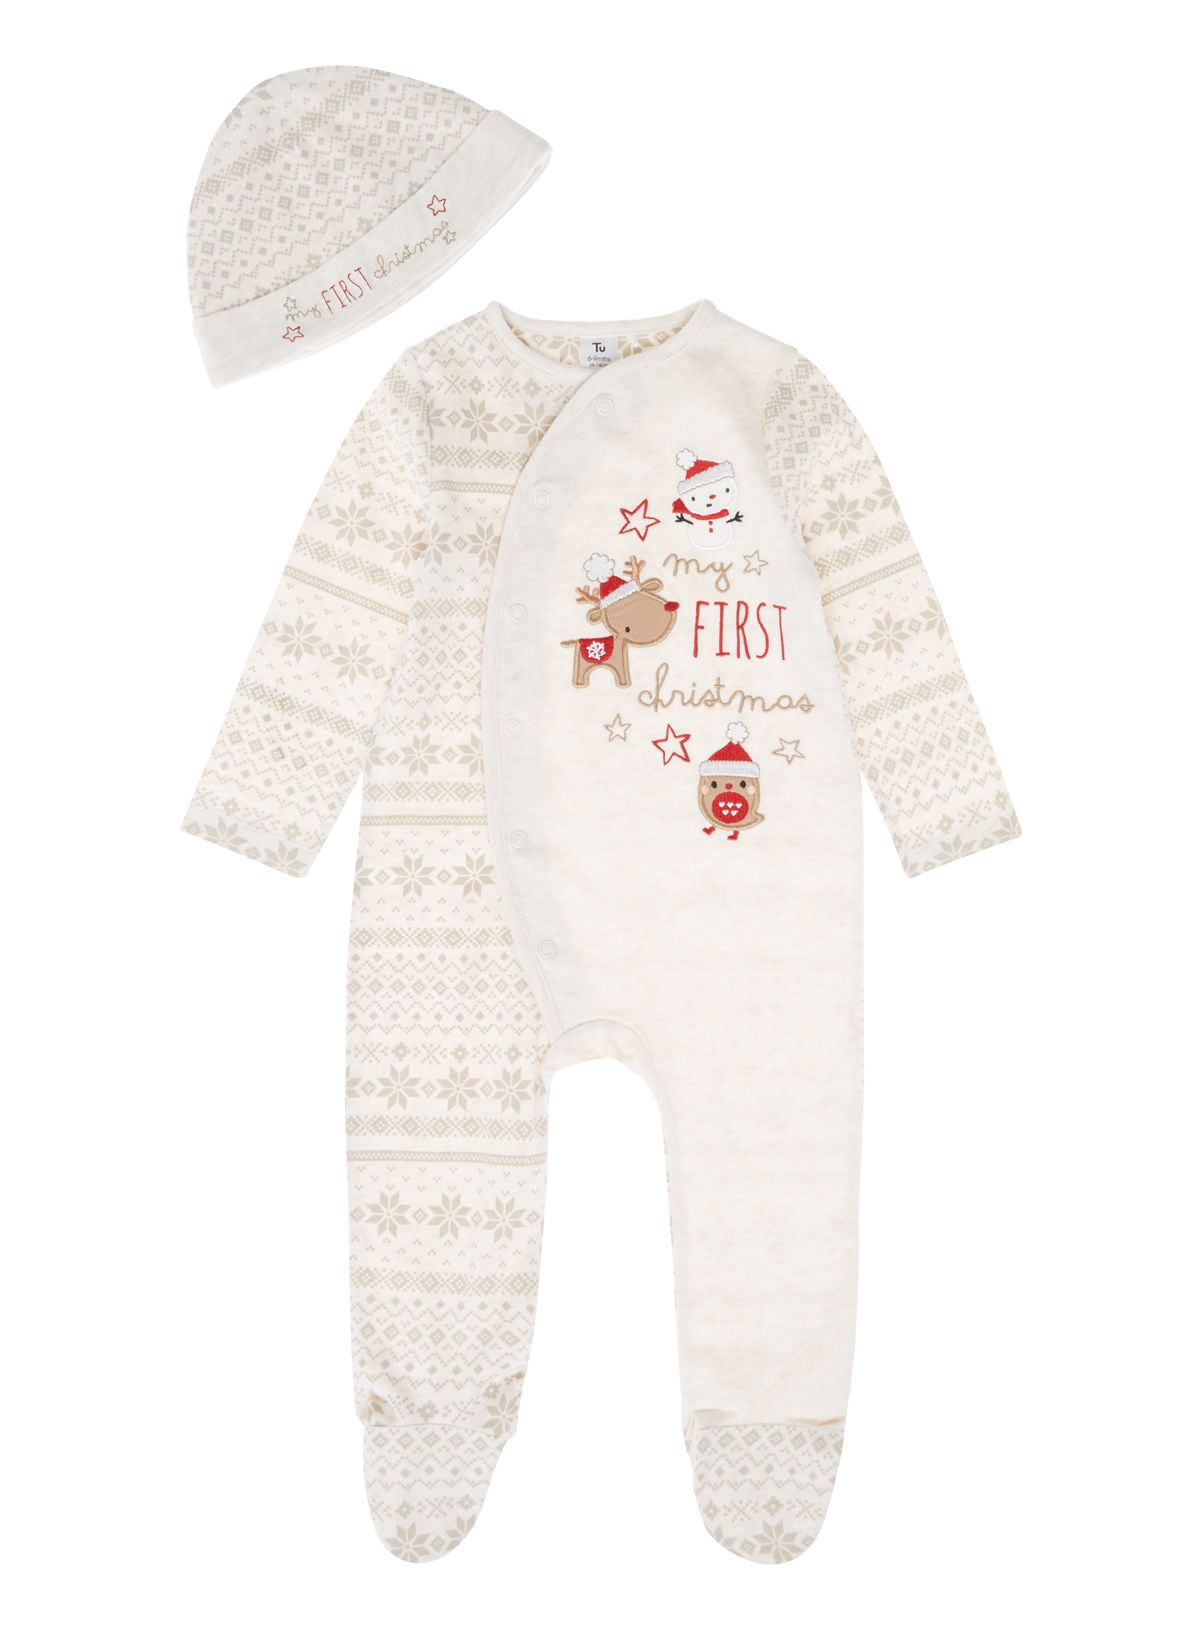 3989d9b8aa35 Baby Unisex Cream First Christmas Sleepsuit (0-24 months)